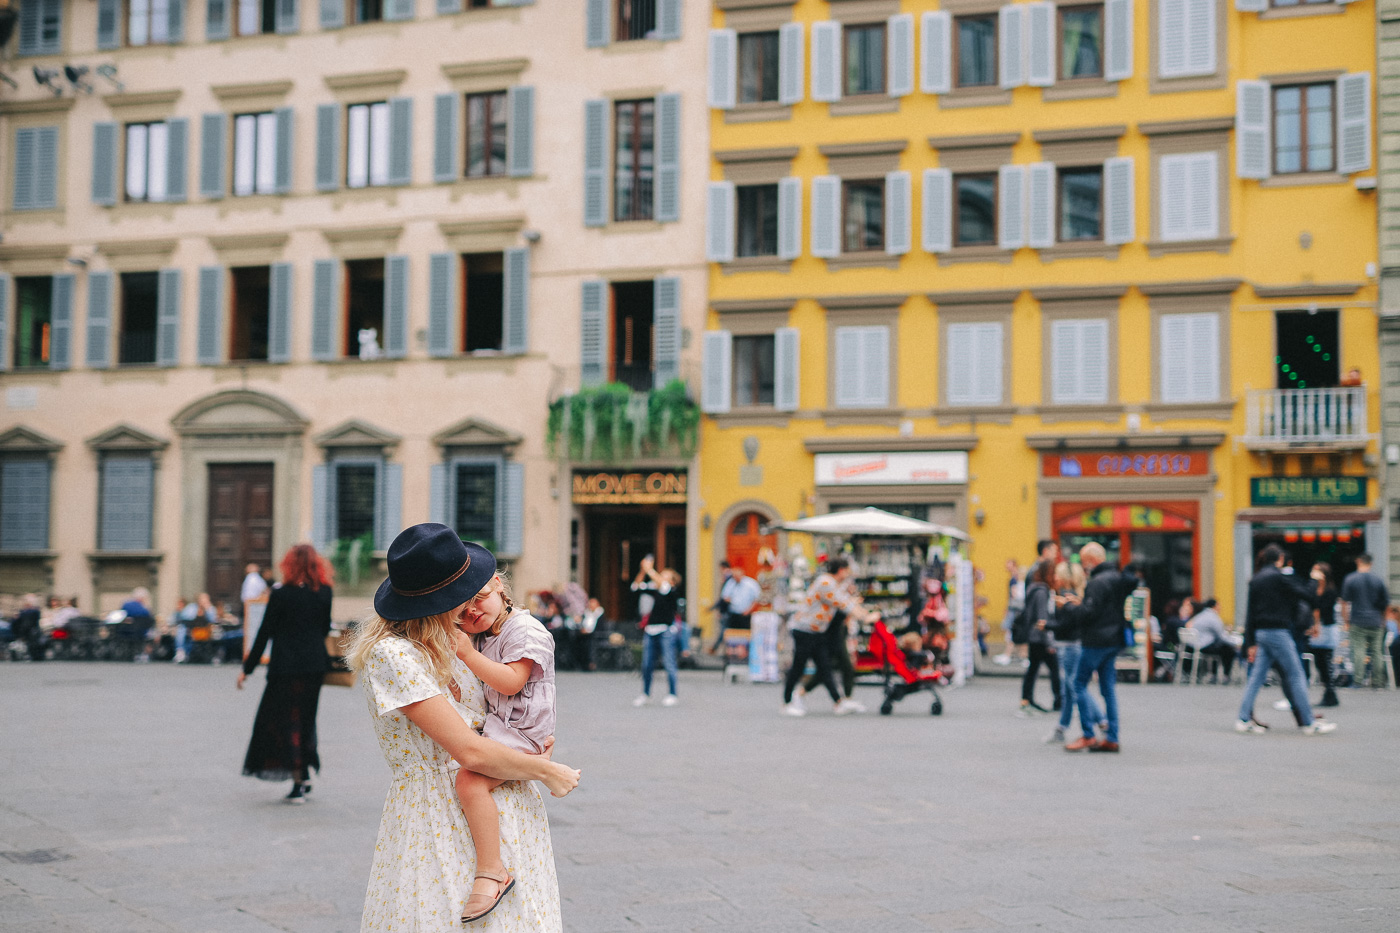 //euphoriawedding.com/wp-content/uploads/2019/11/Family-Photoshoot_Florence_WEB-89.jpg